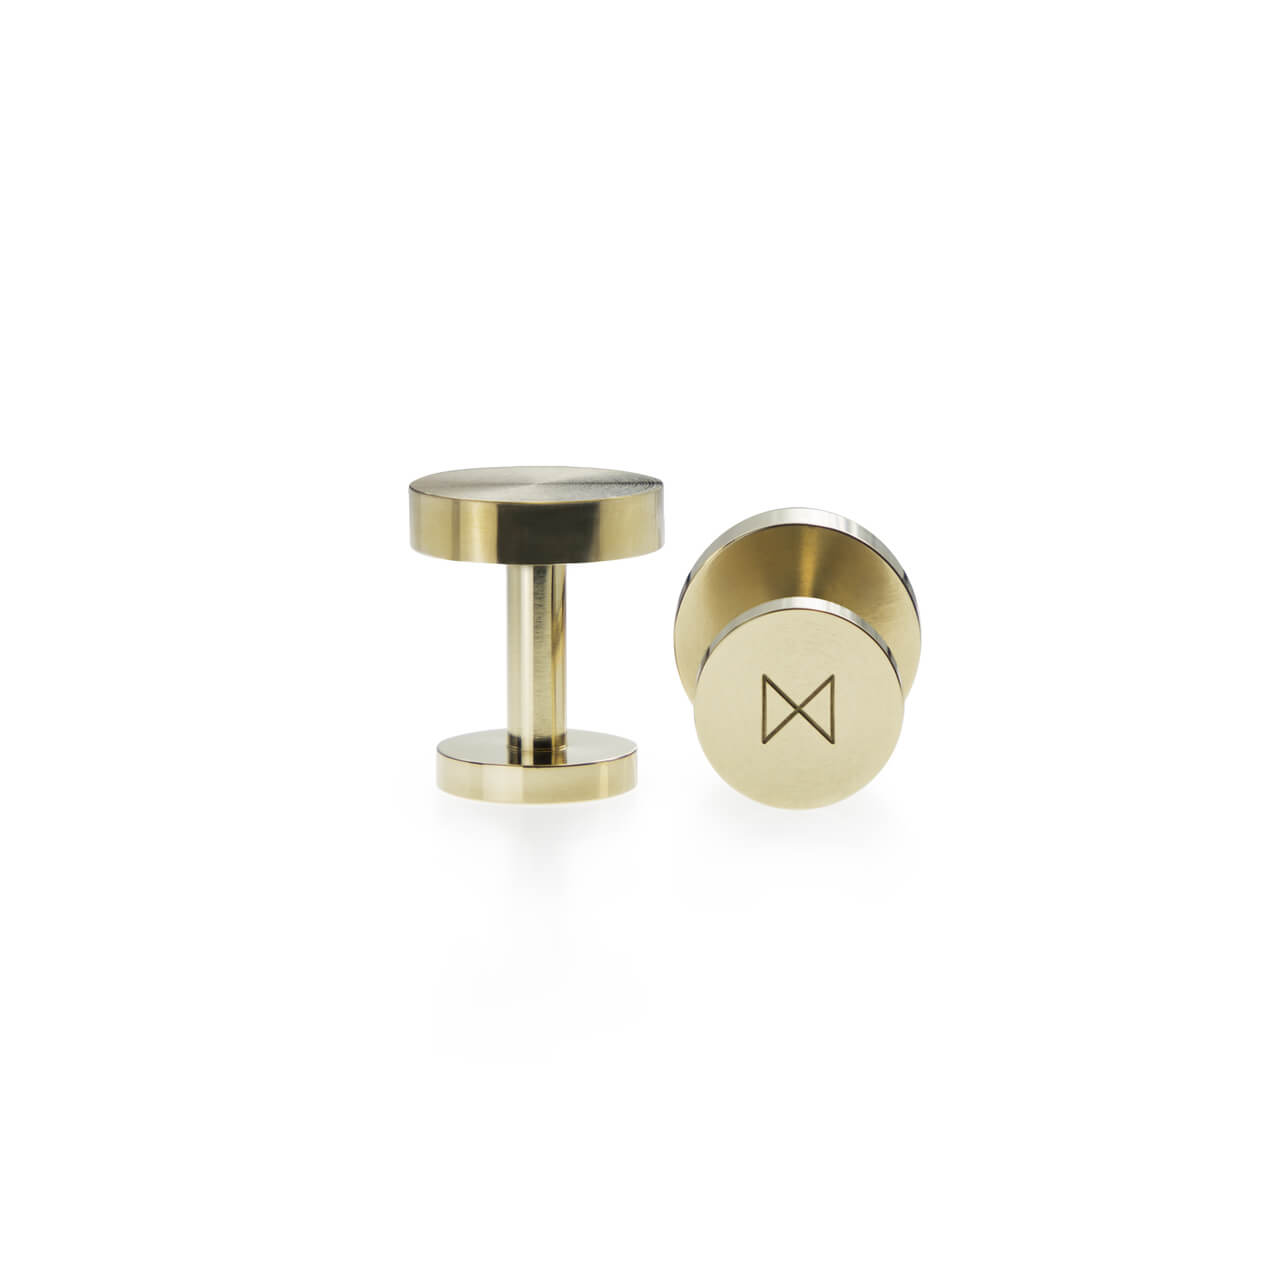 Cufflinks Hero MB Web  37192.1482506353